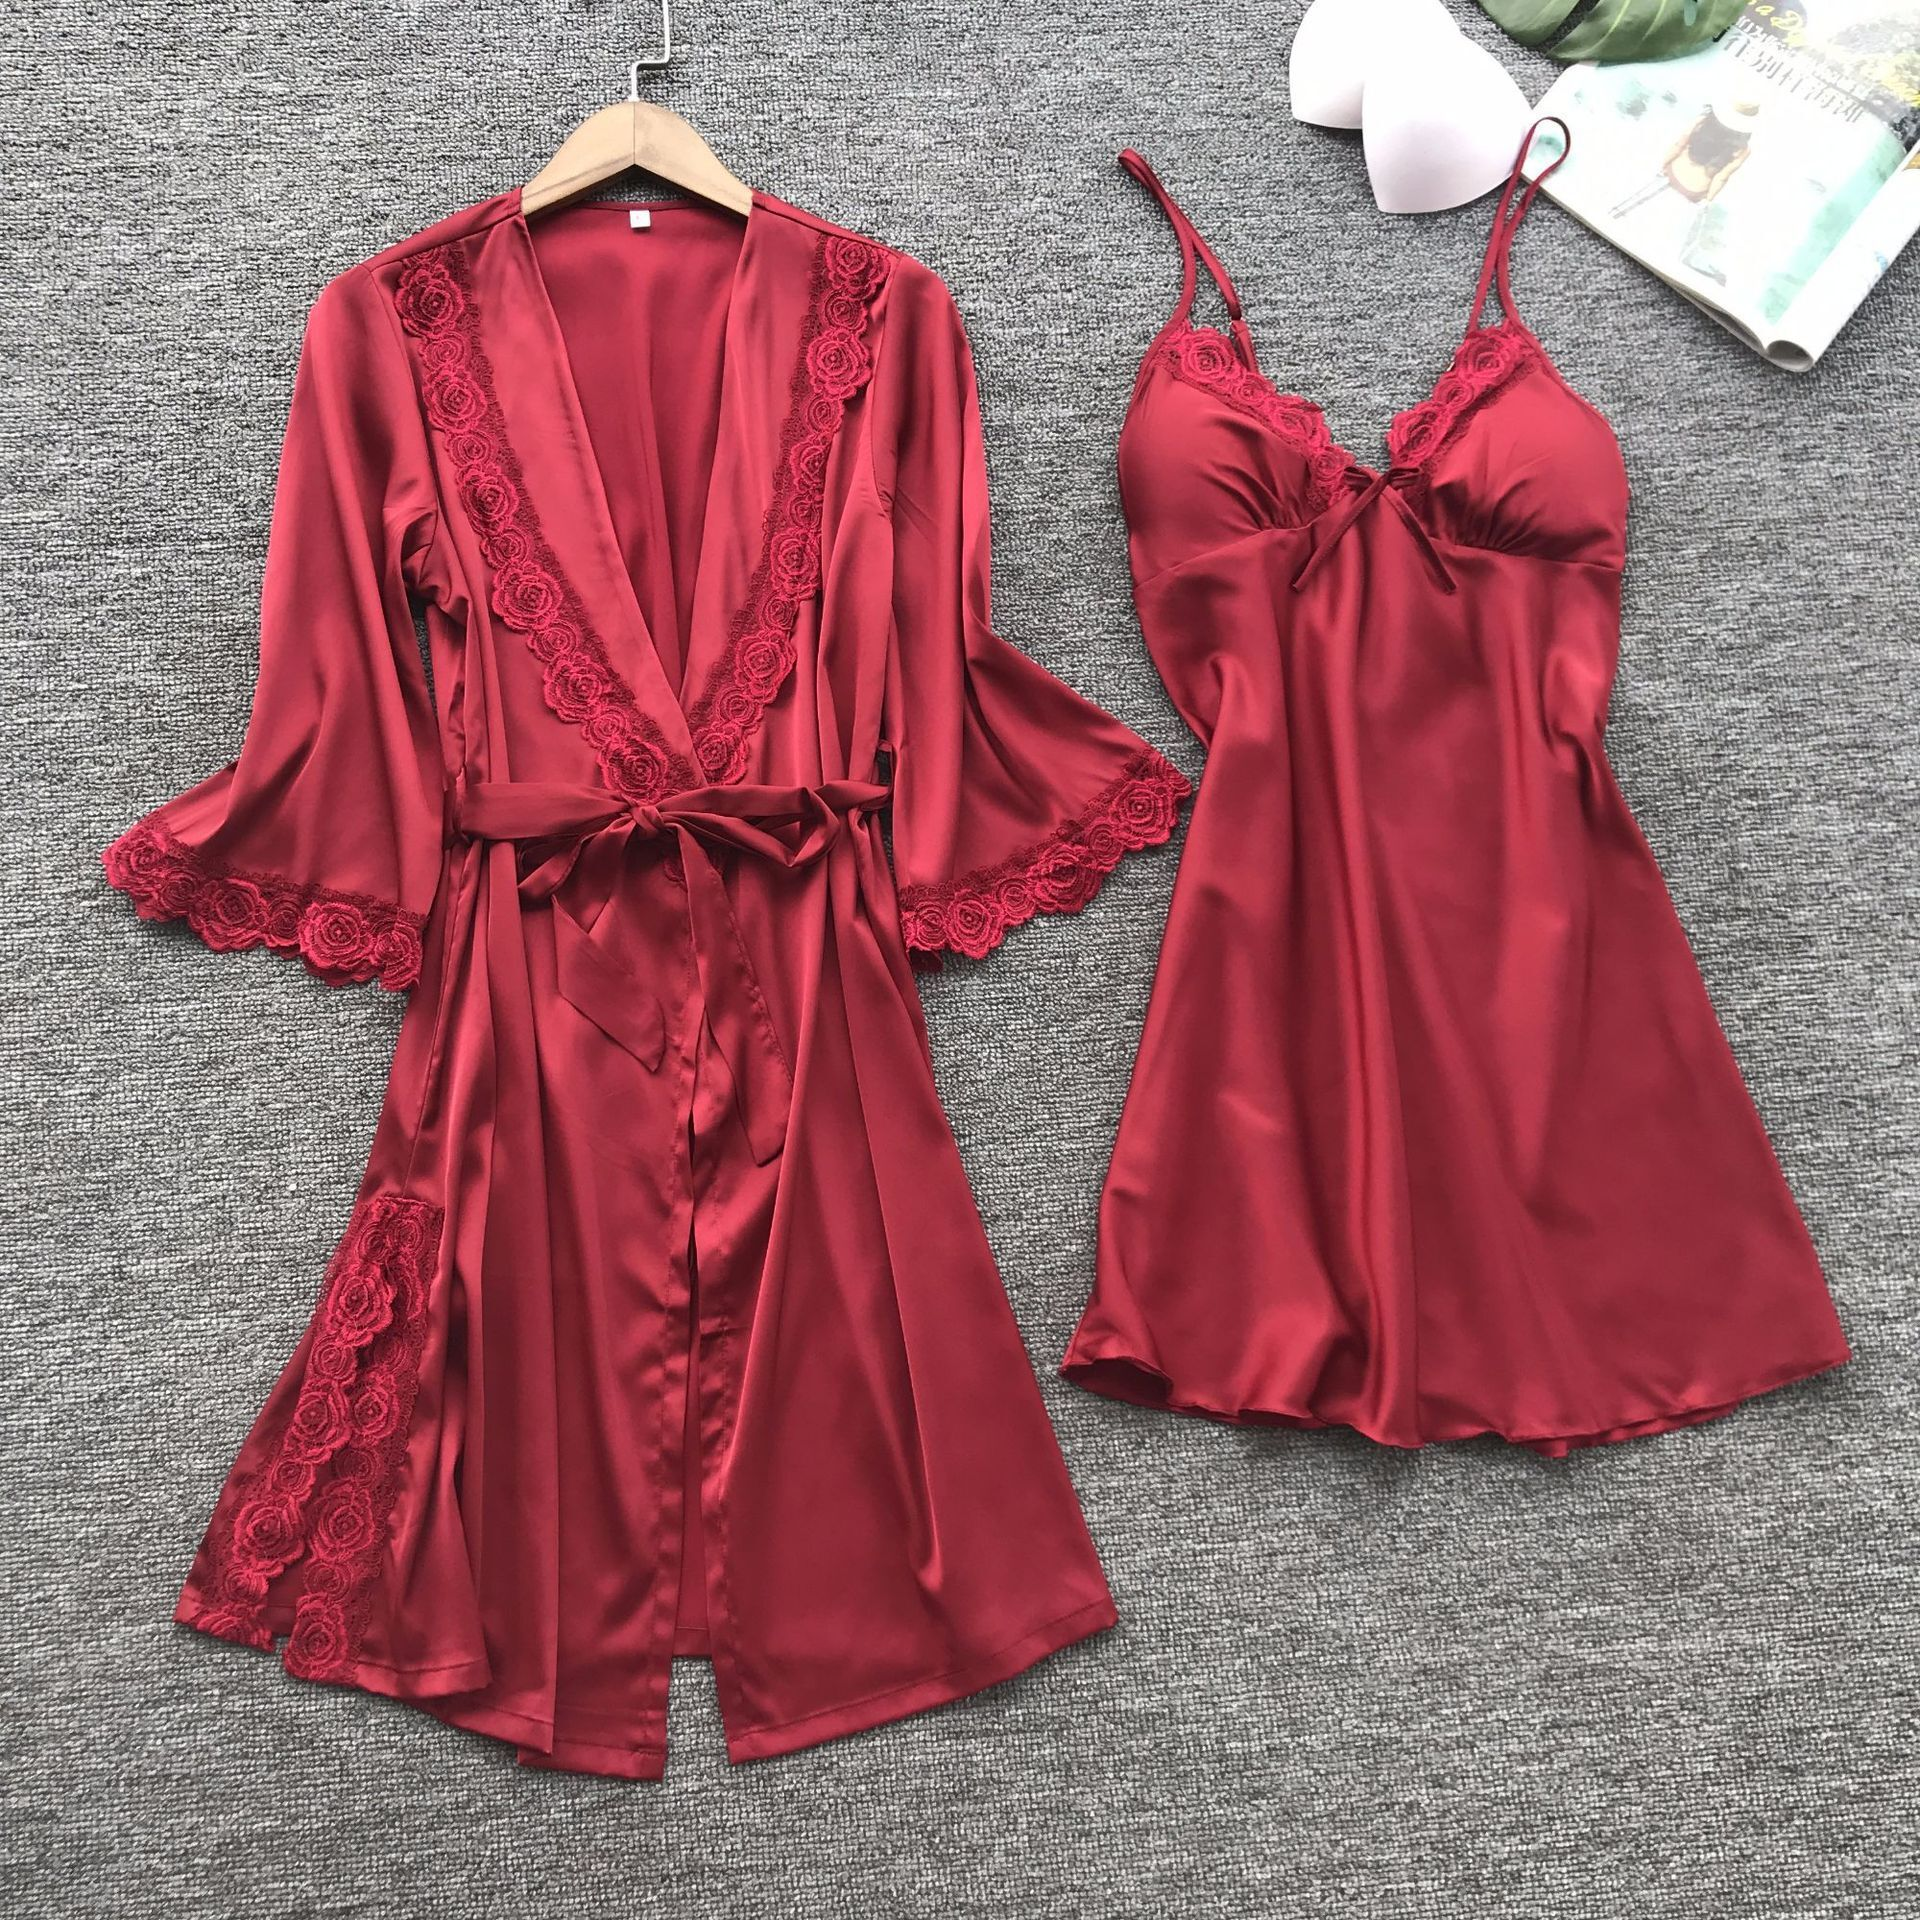 Sexy Women Pajamas Sets Satin Sleepwear Silk 2 Pieces Nightwear Robe Pyjama Spaghetti Strap Lace Nightgown Lounge Pijama Set